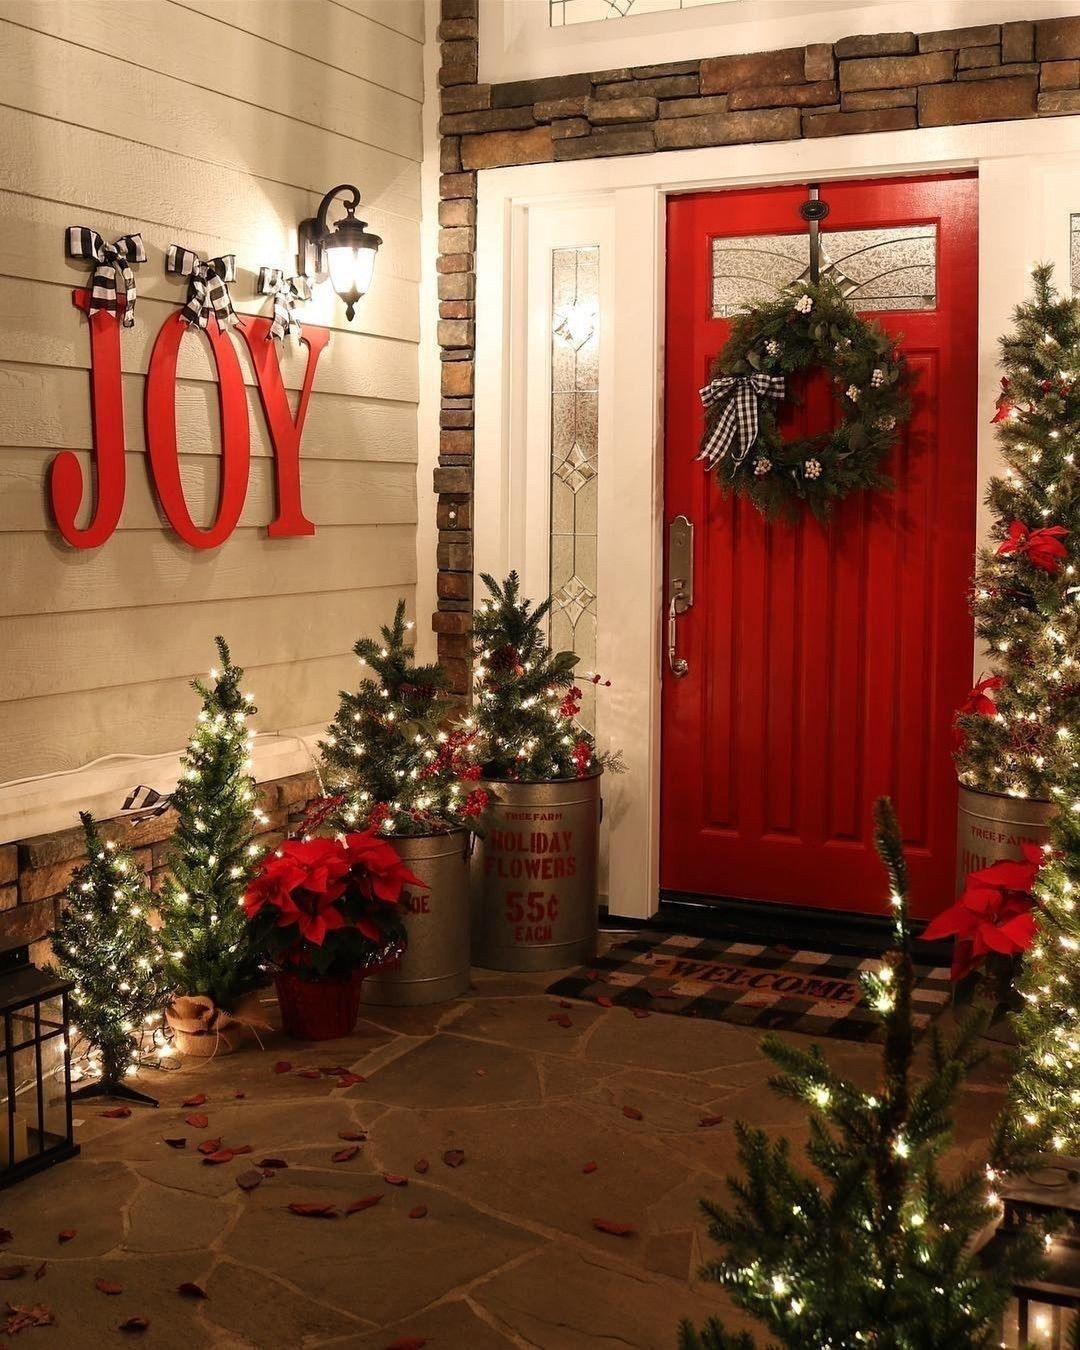 27 Fabulous Outdoor Christmas Decorations For A Winter Wonderland Outdoor Christmas Decorations Christmas Decorations Christmas Porch